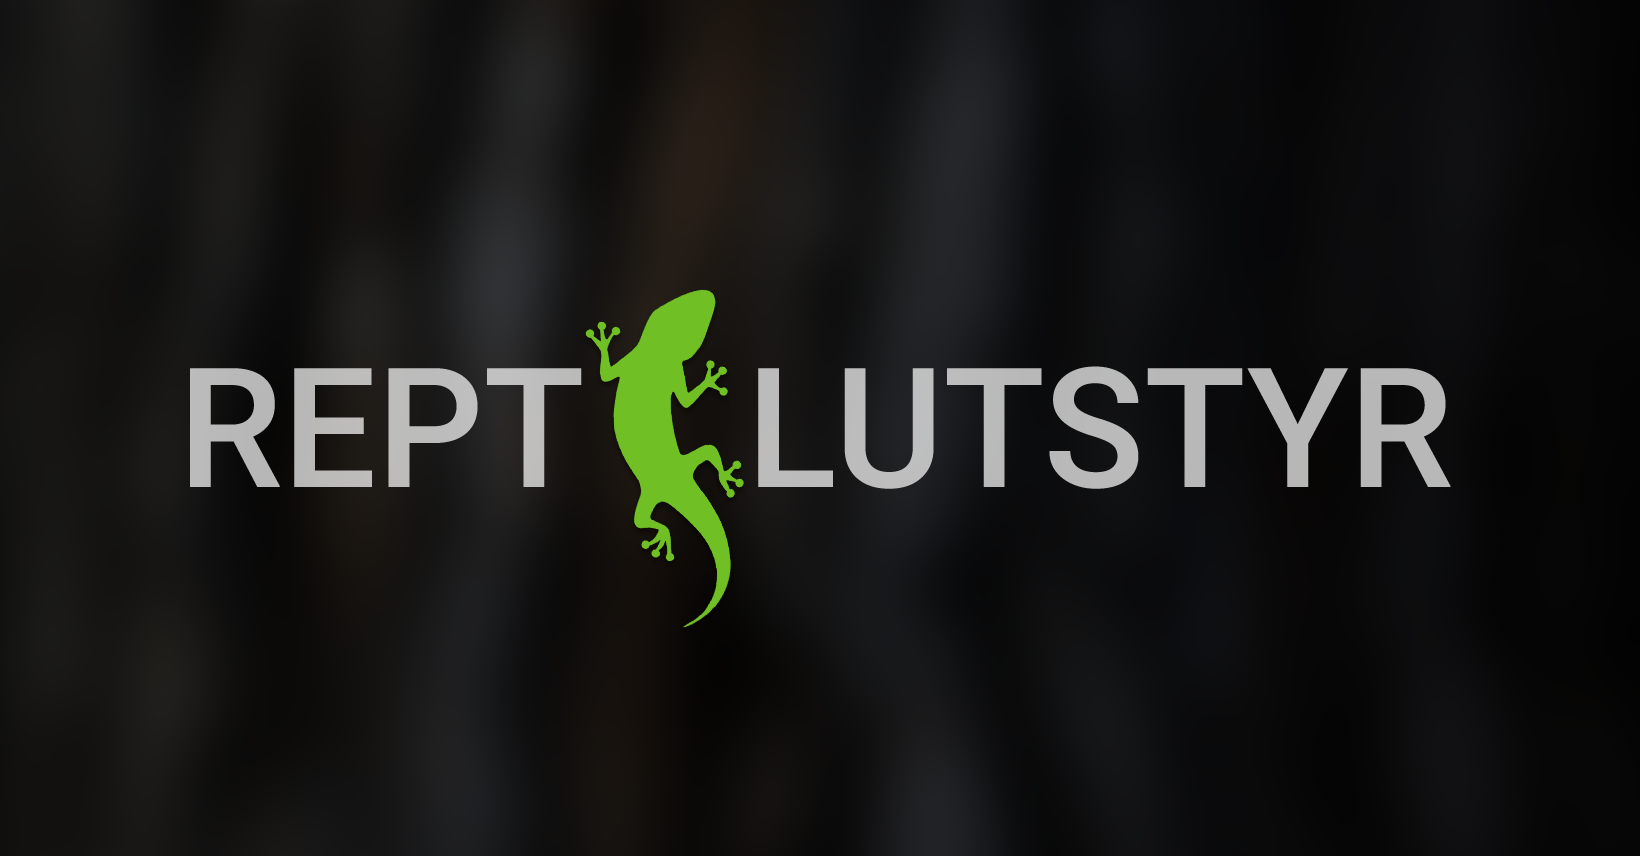 Reptilutstyr AS